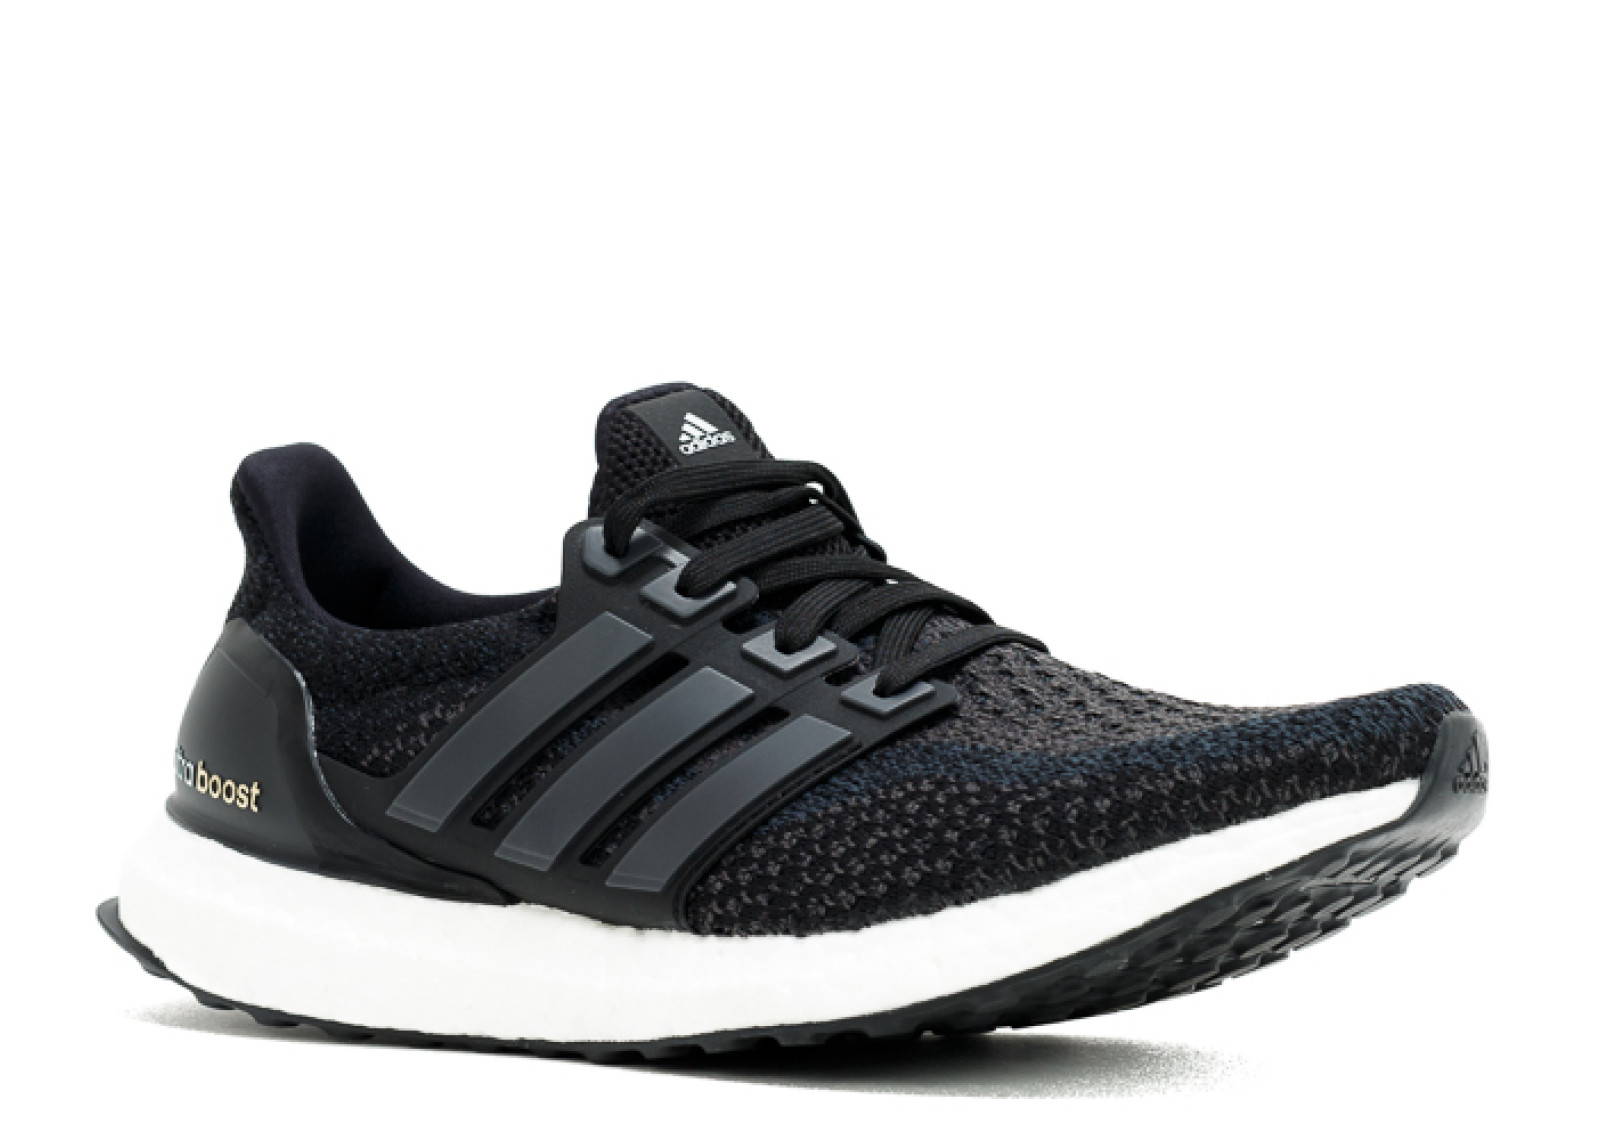 100% authentic 46170 ecd57 Details about Ultra Boost M - Bb3909 - Size 7.5